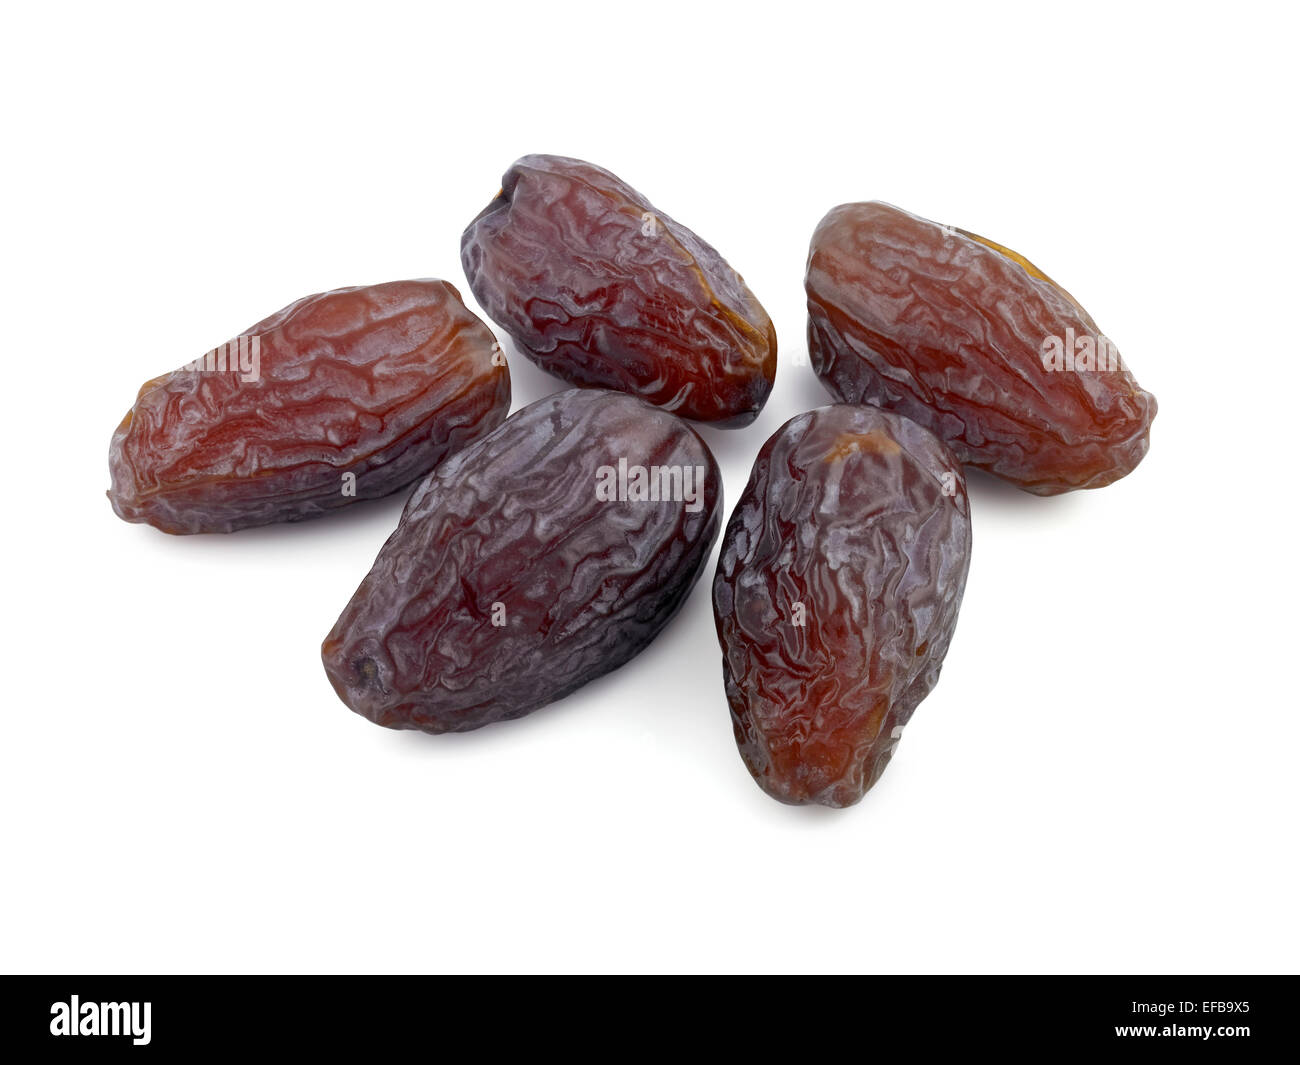 dates, medjool - Stock Image